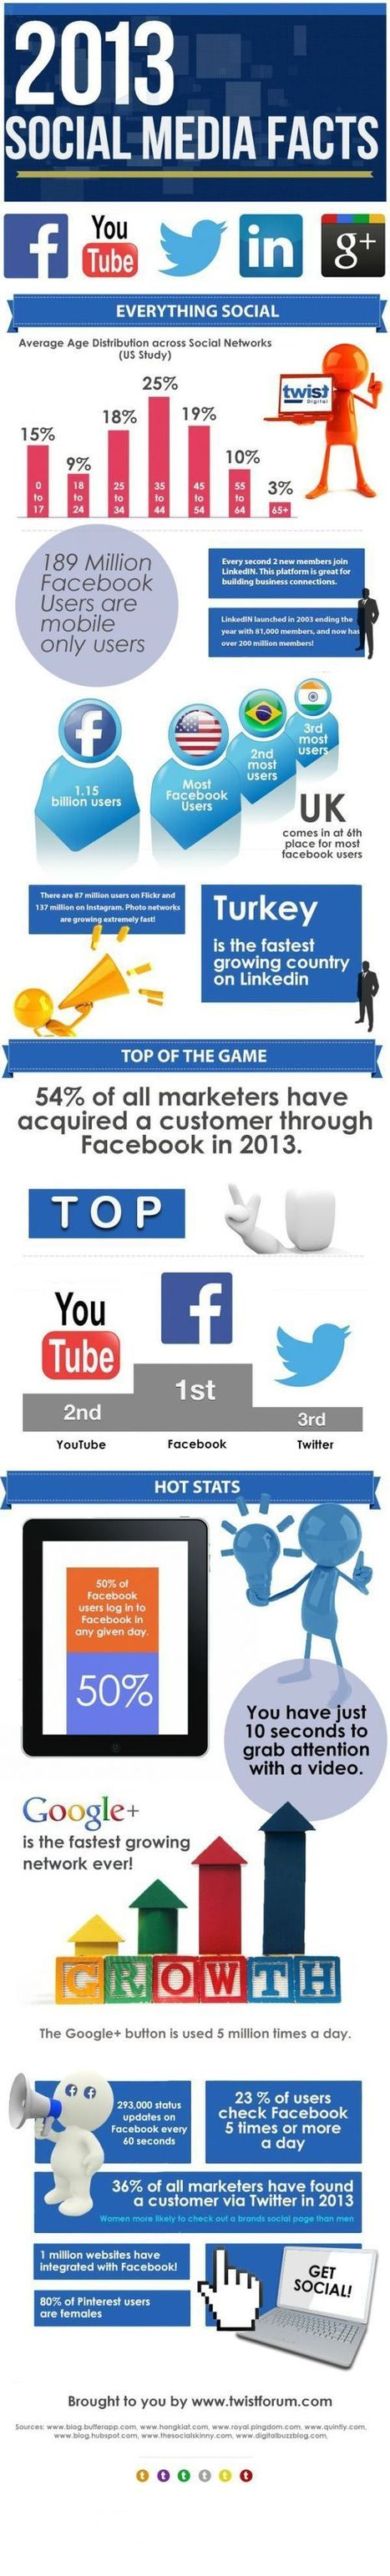 Social Media Facts From 2013 t Keep In Mind For 2014 | Visual Content Strategy | Scoop.it